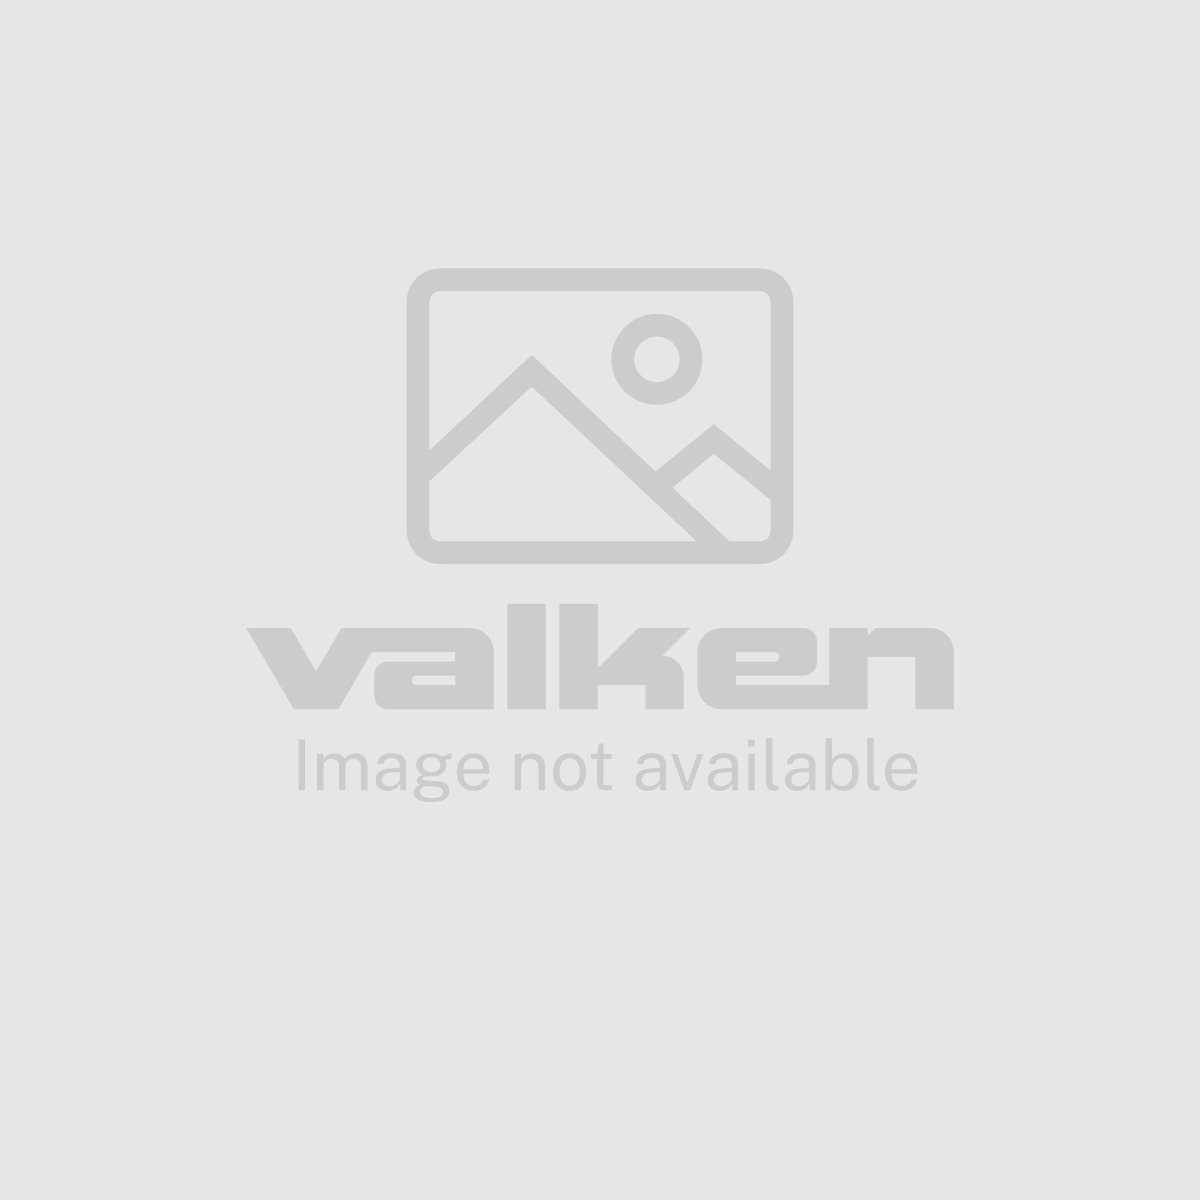 View larger image of Valken Alpha 4 Paintball Harness - Camo